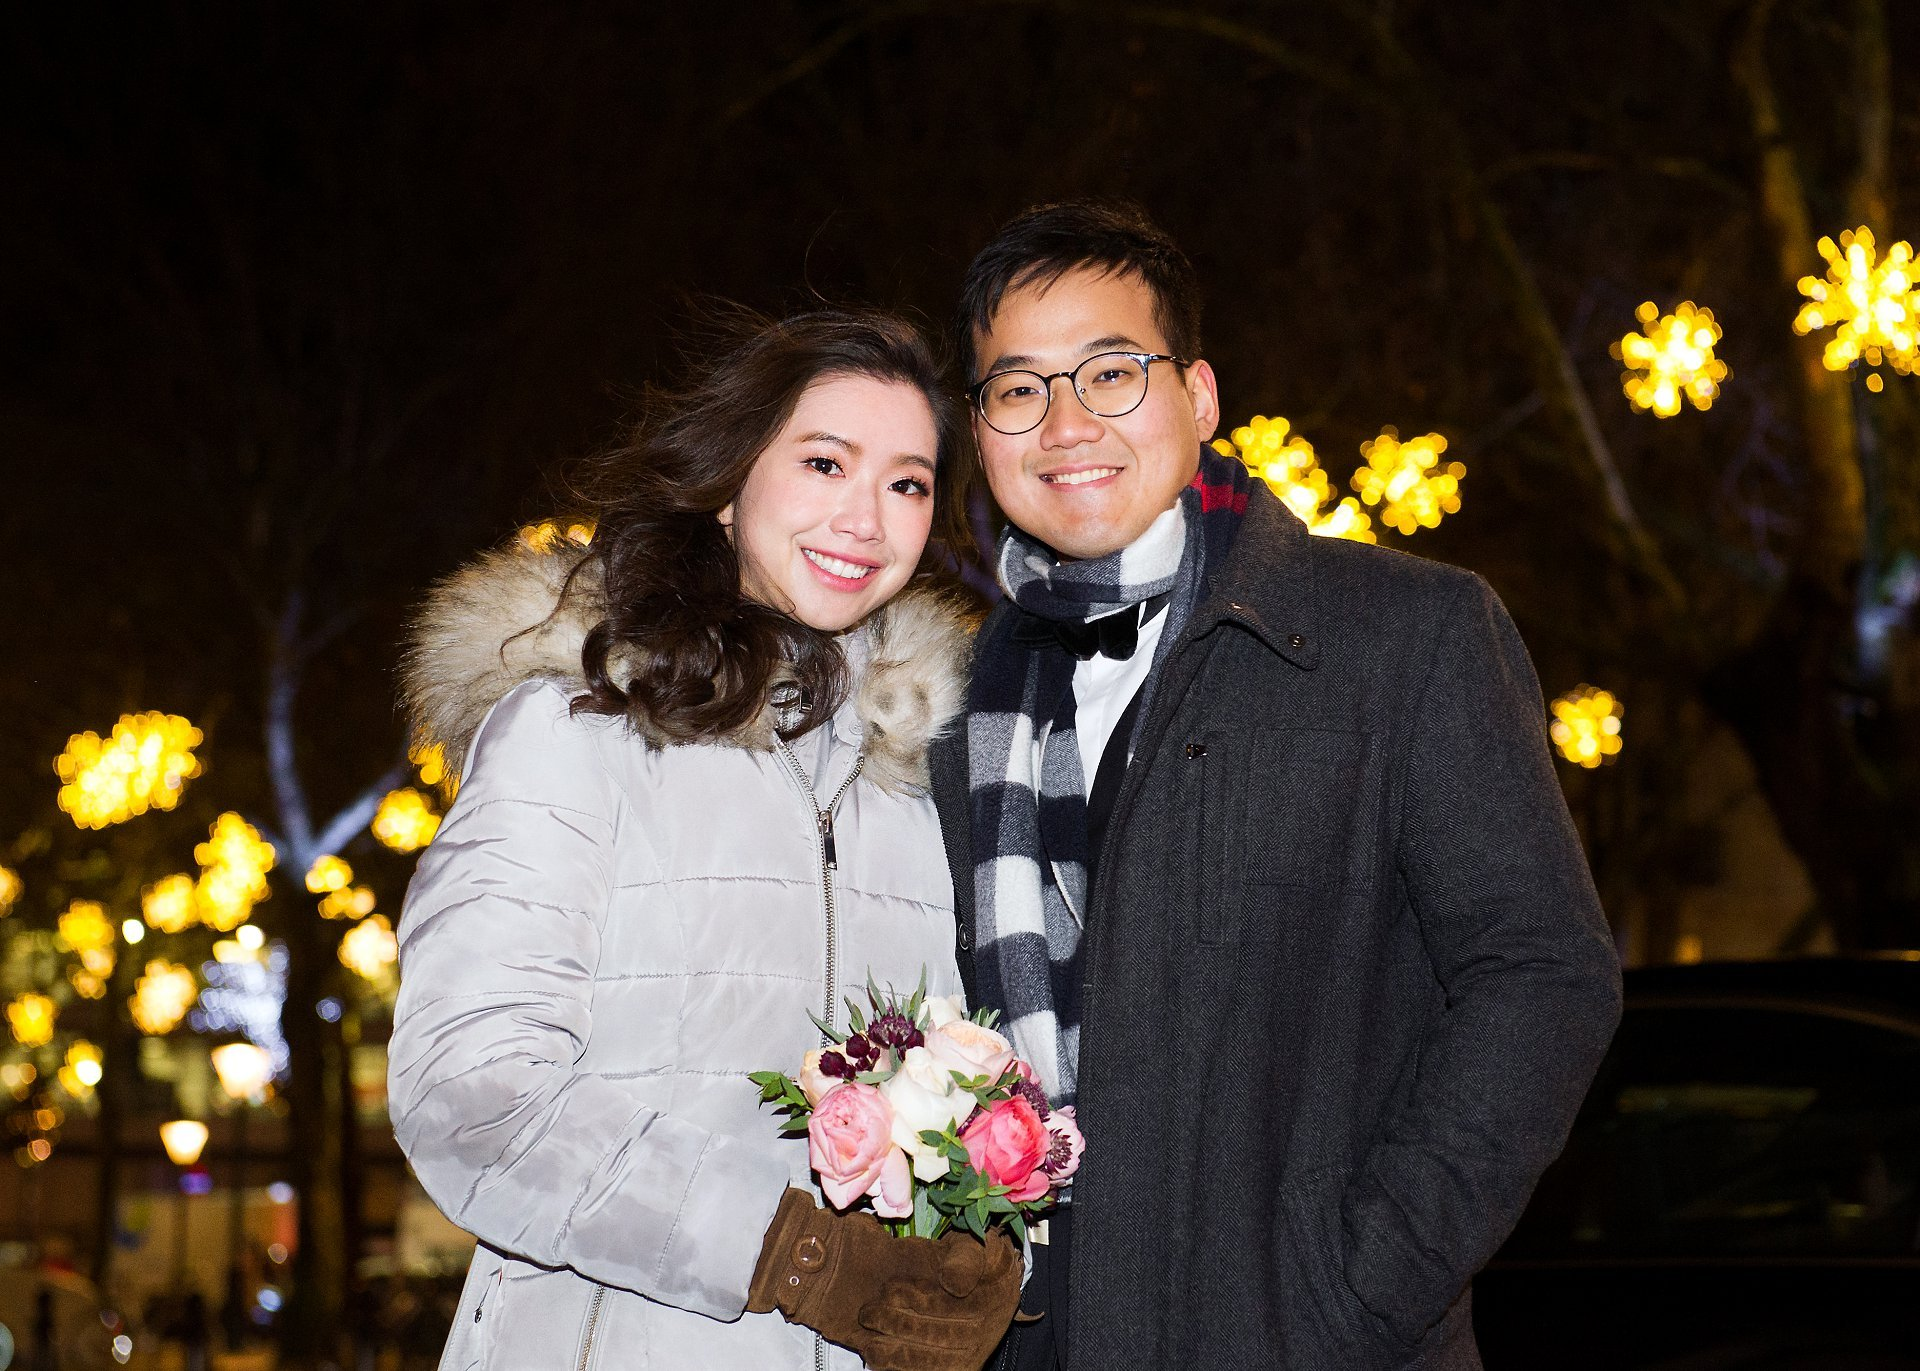 Chelsea Old Town Hall Christmas wedding bride and groom in Sloane Square with Christmas lights